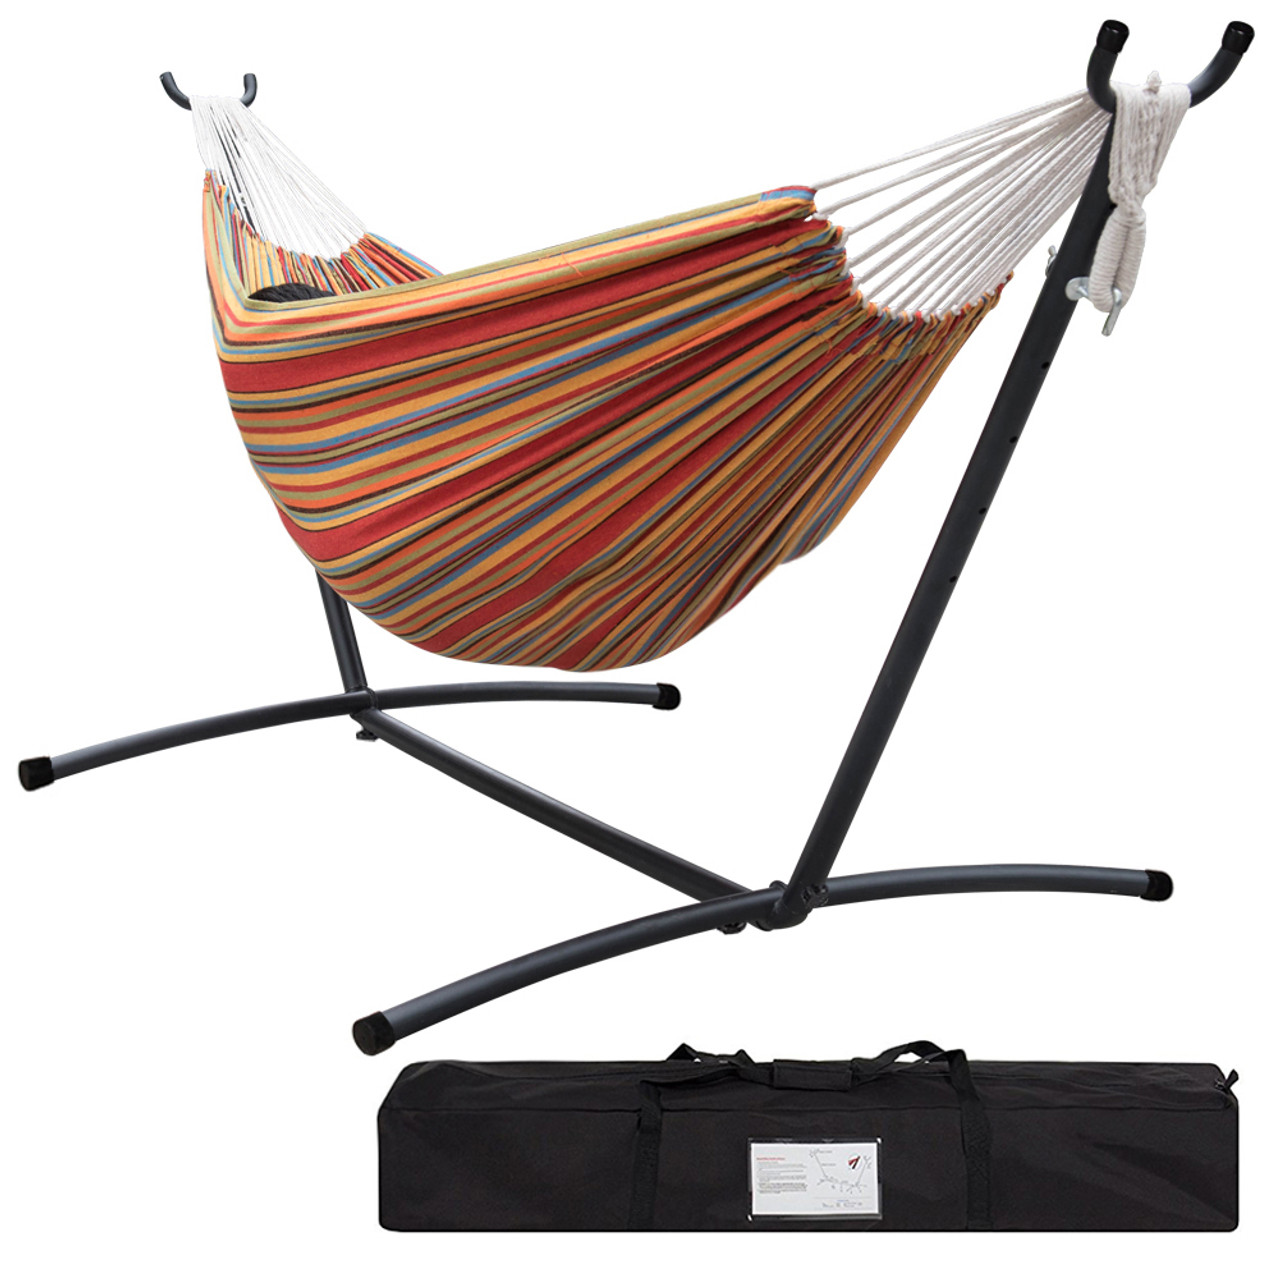 groupon steel stand gg space deals hammock sorbus saving with double latest